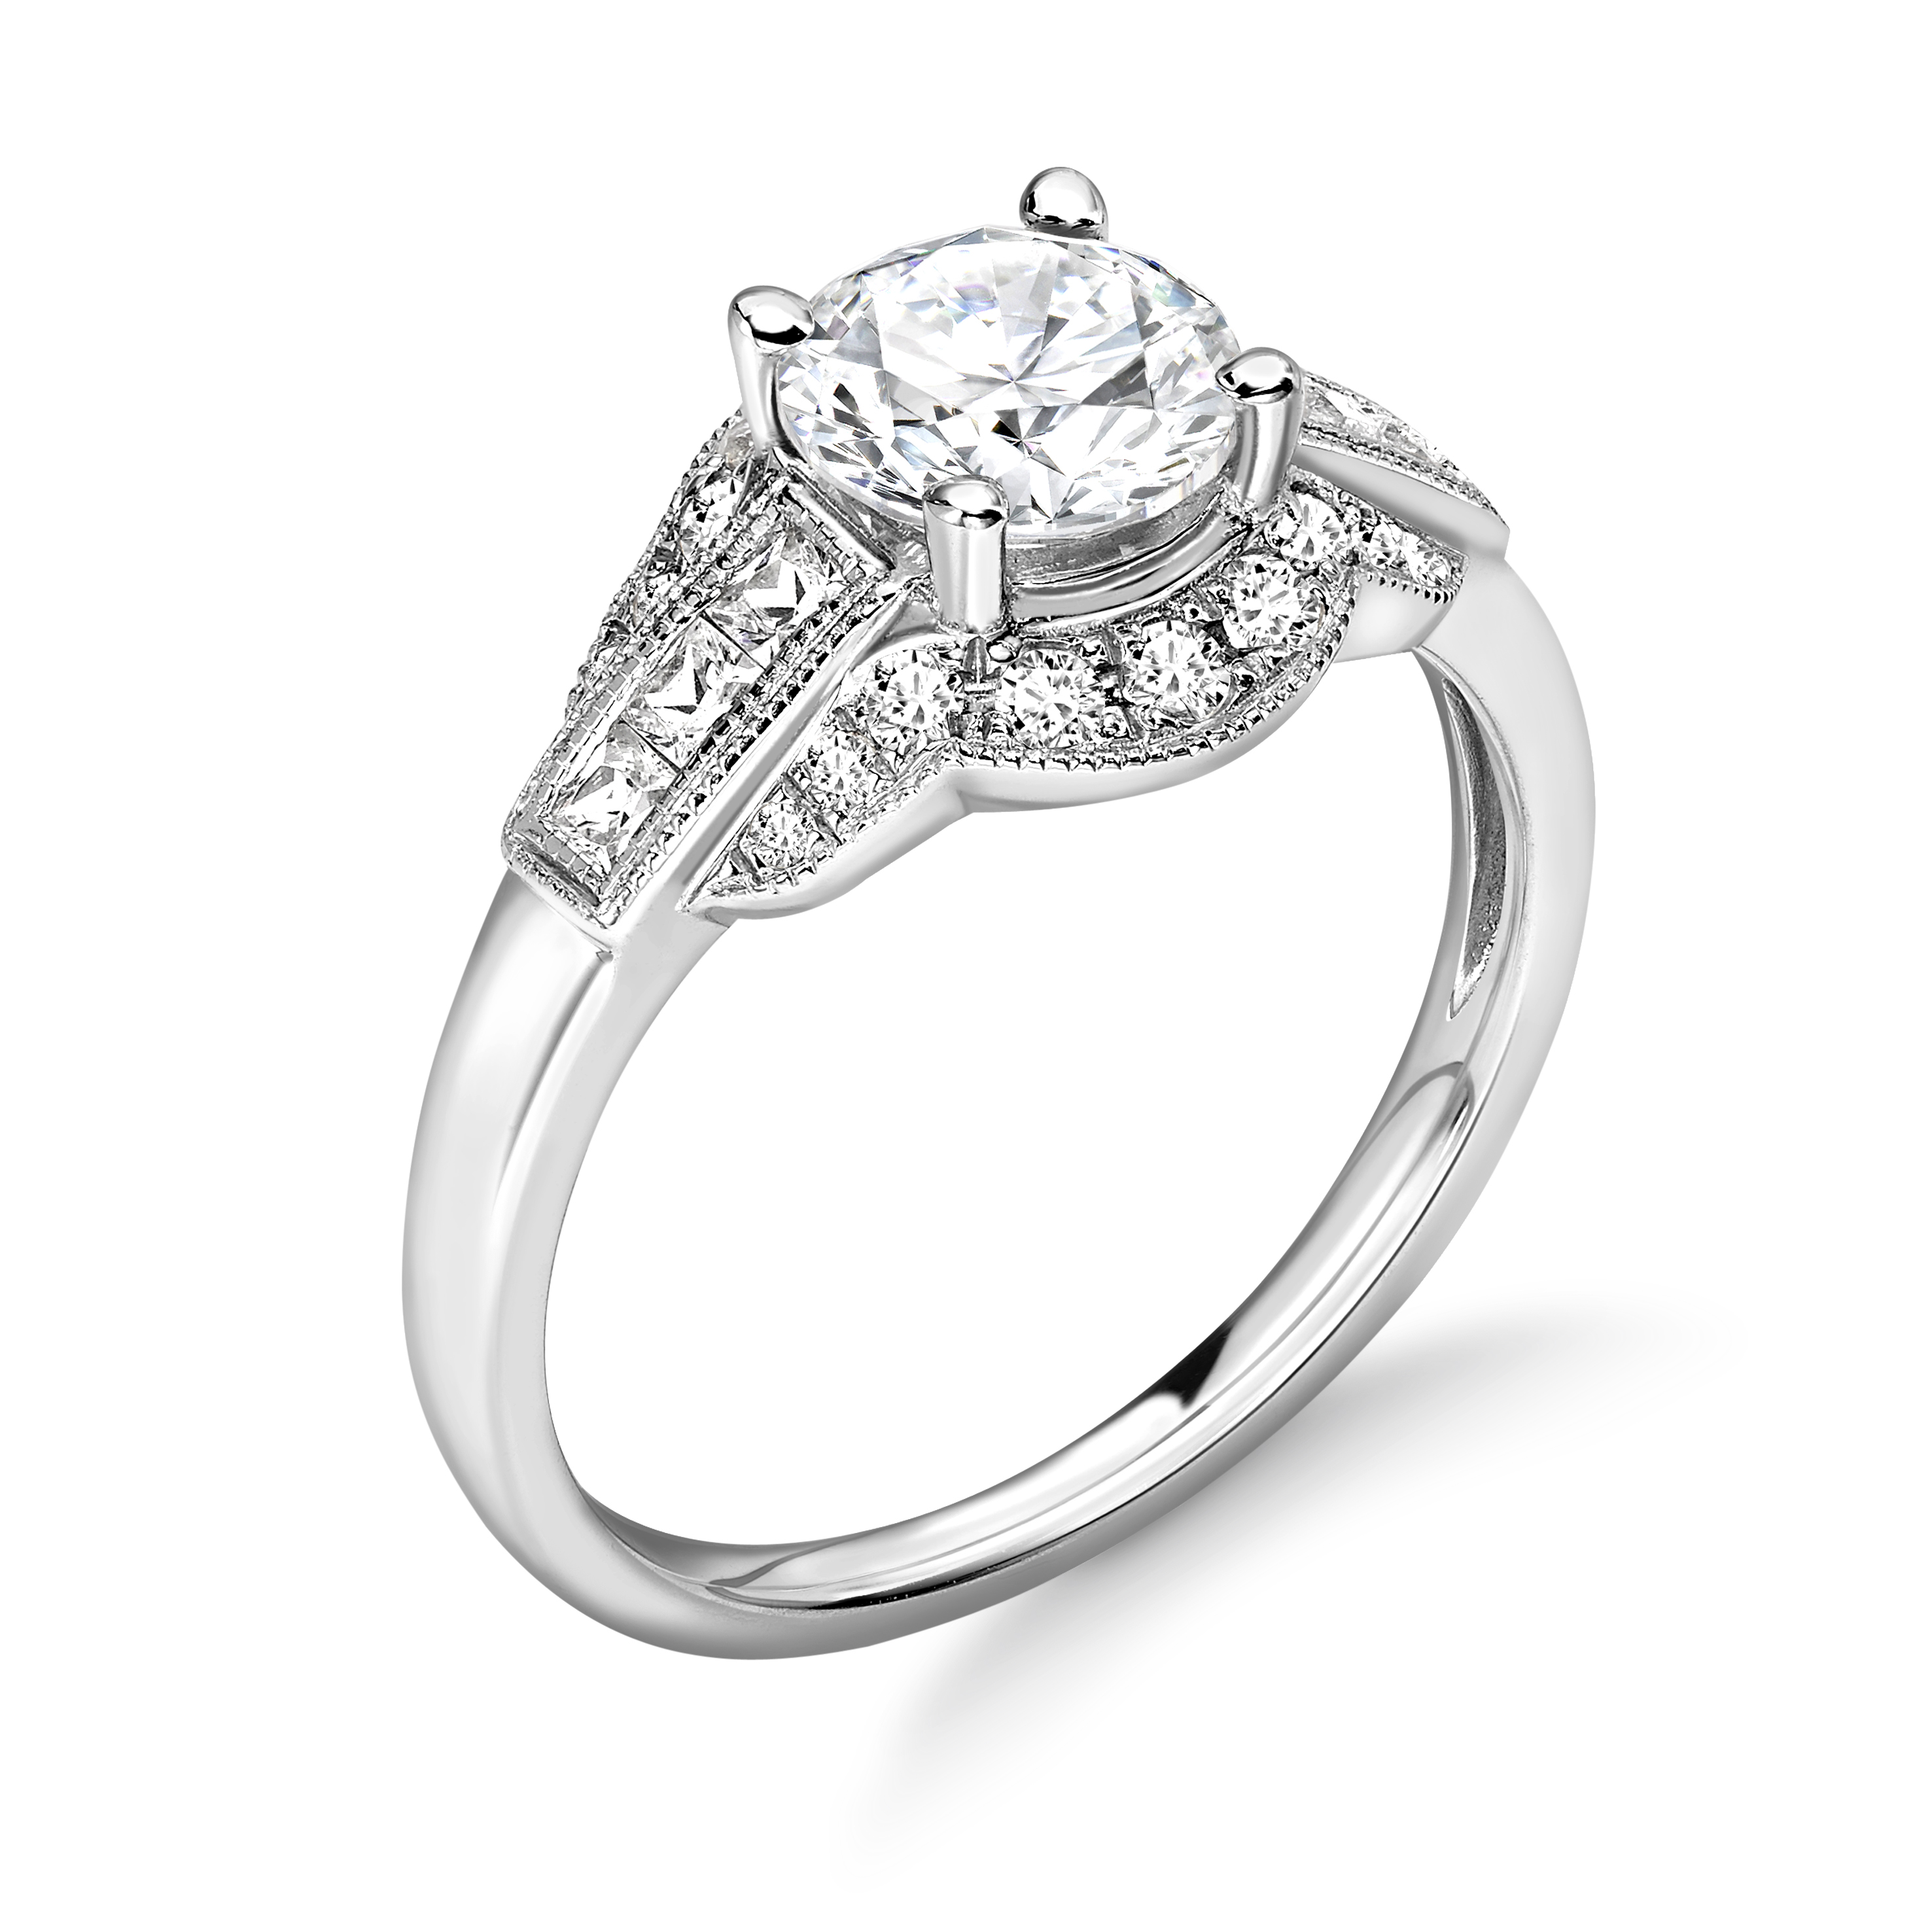 Vintage Style Unique Shoulder Set Diamond Engagement Ring